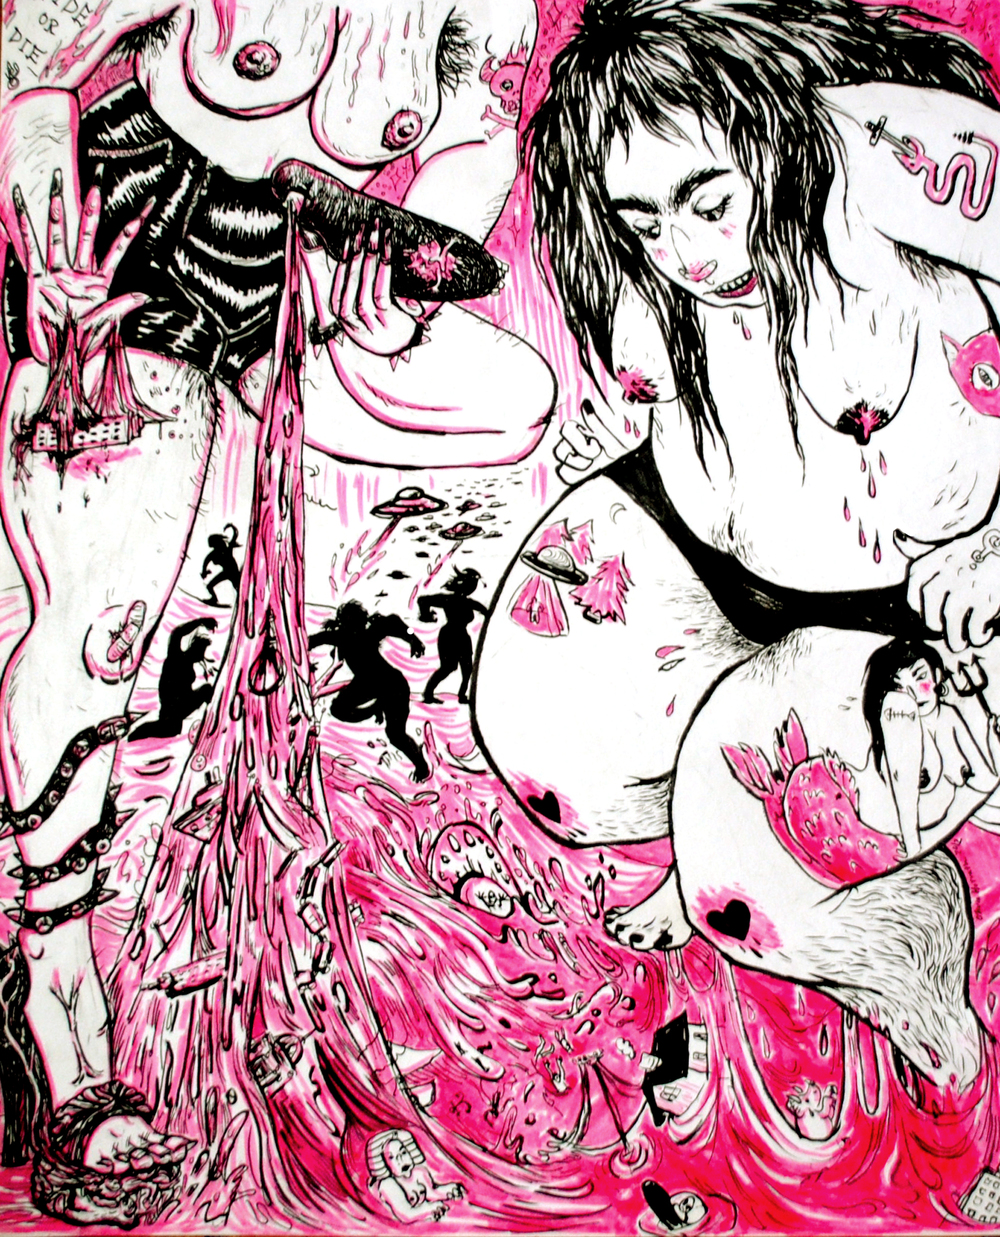 SMUSH (2012) with Meg Powers for SKULL VOMIT ZINE